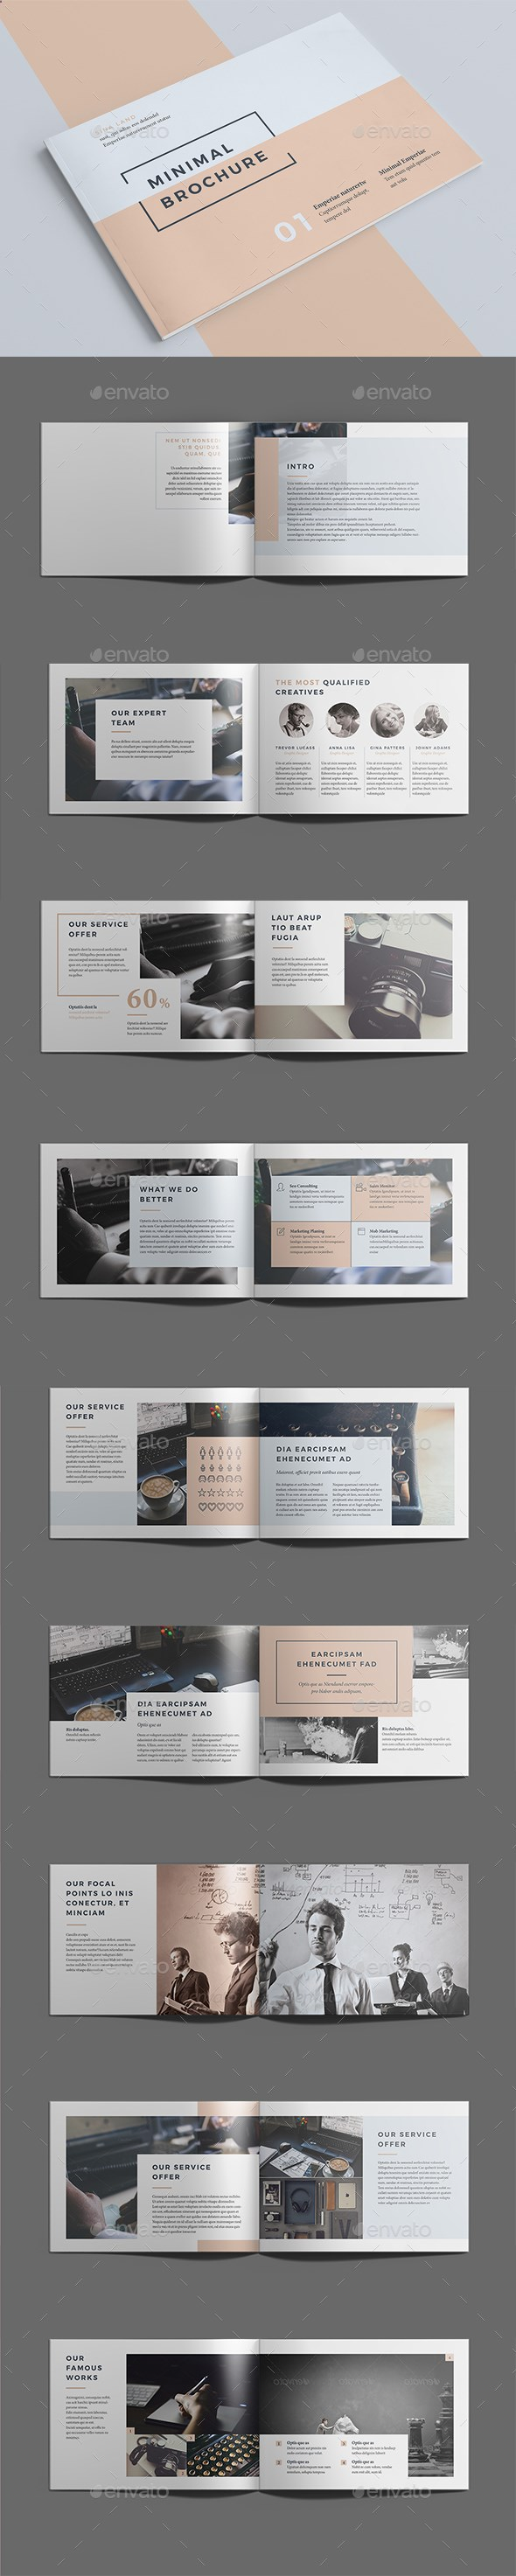 Minimal Brochure Template InDesign INDD. Download here: graphicriver ...